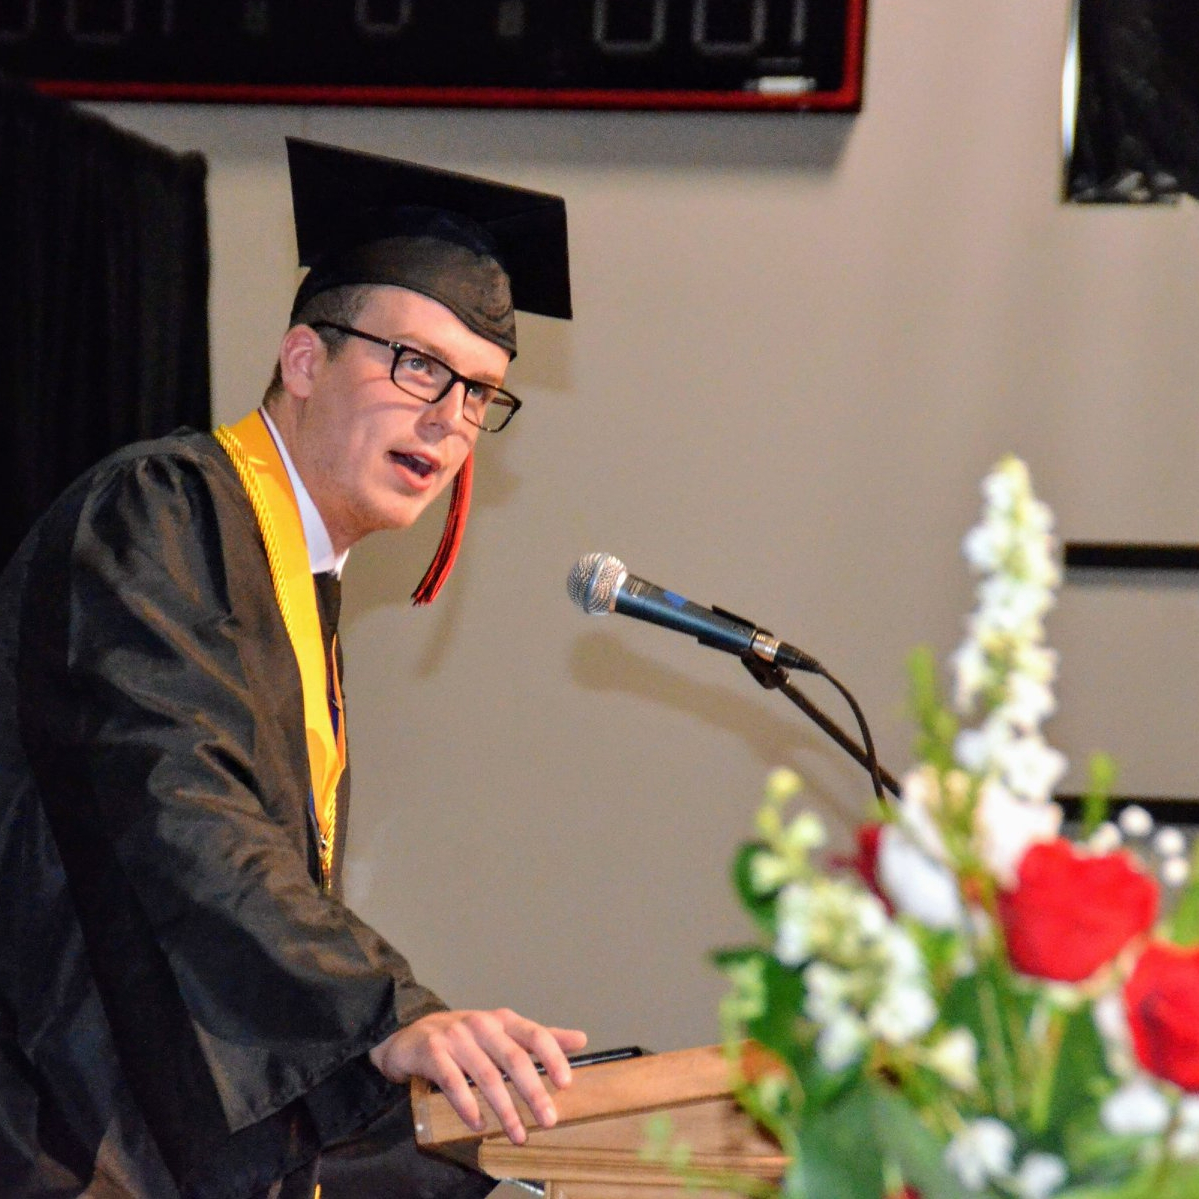 Valedictorian Grant Gardener shares at 2019 Commencement